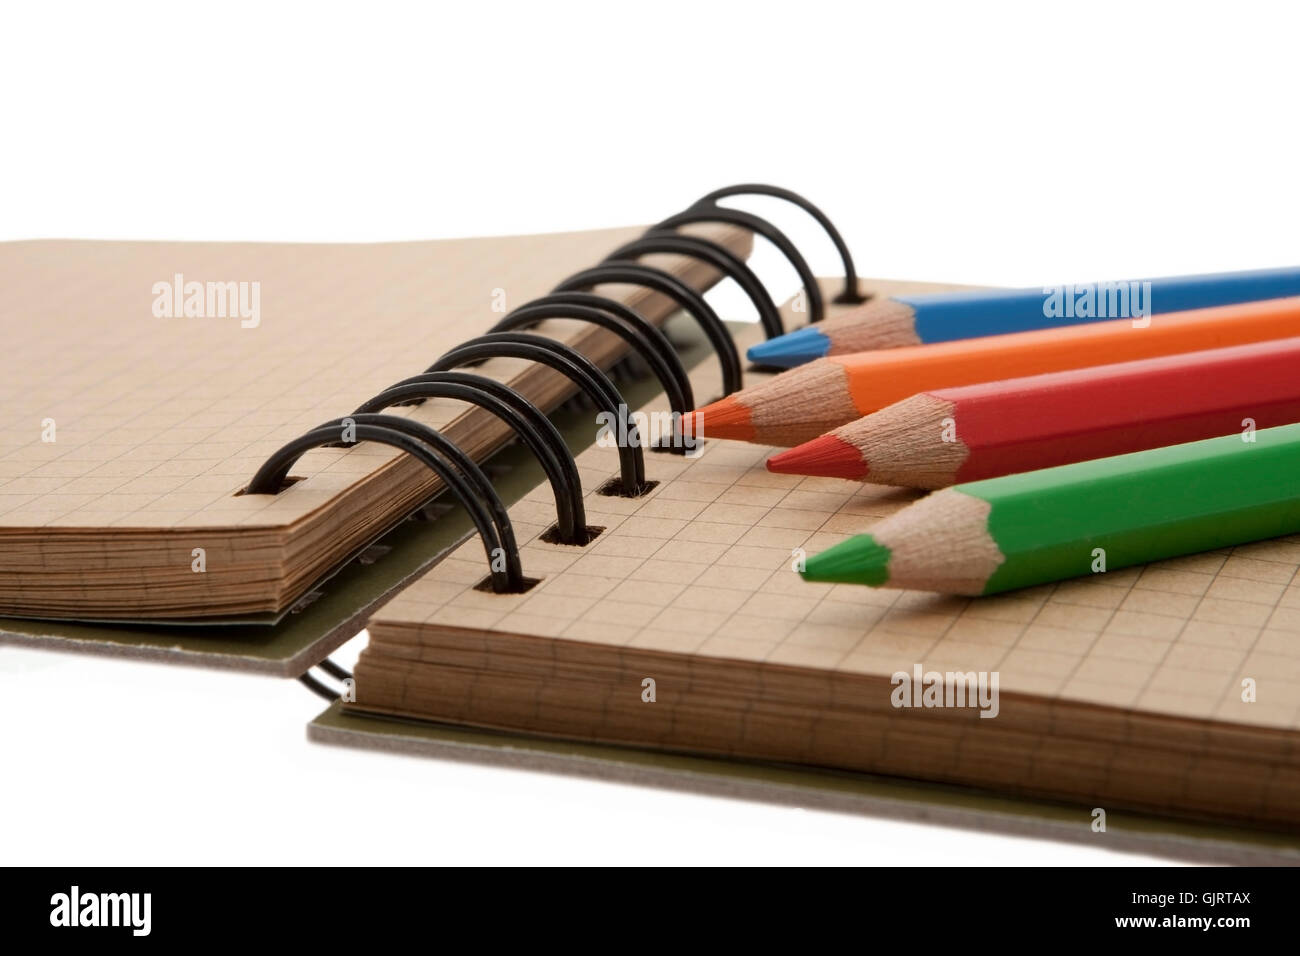 scratchpad colored pencils scratchpad - Stock Image